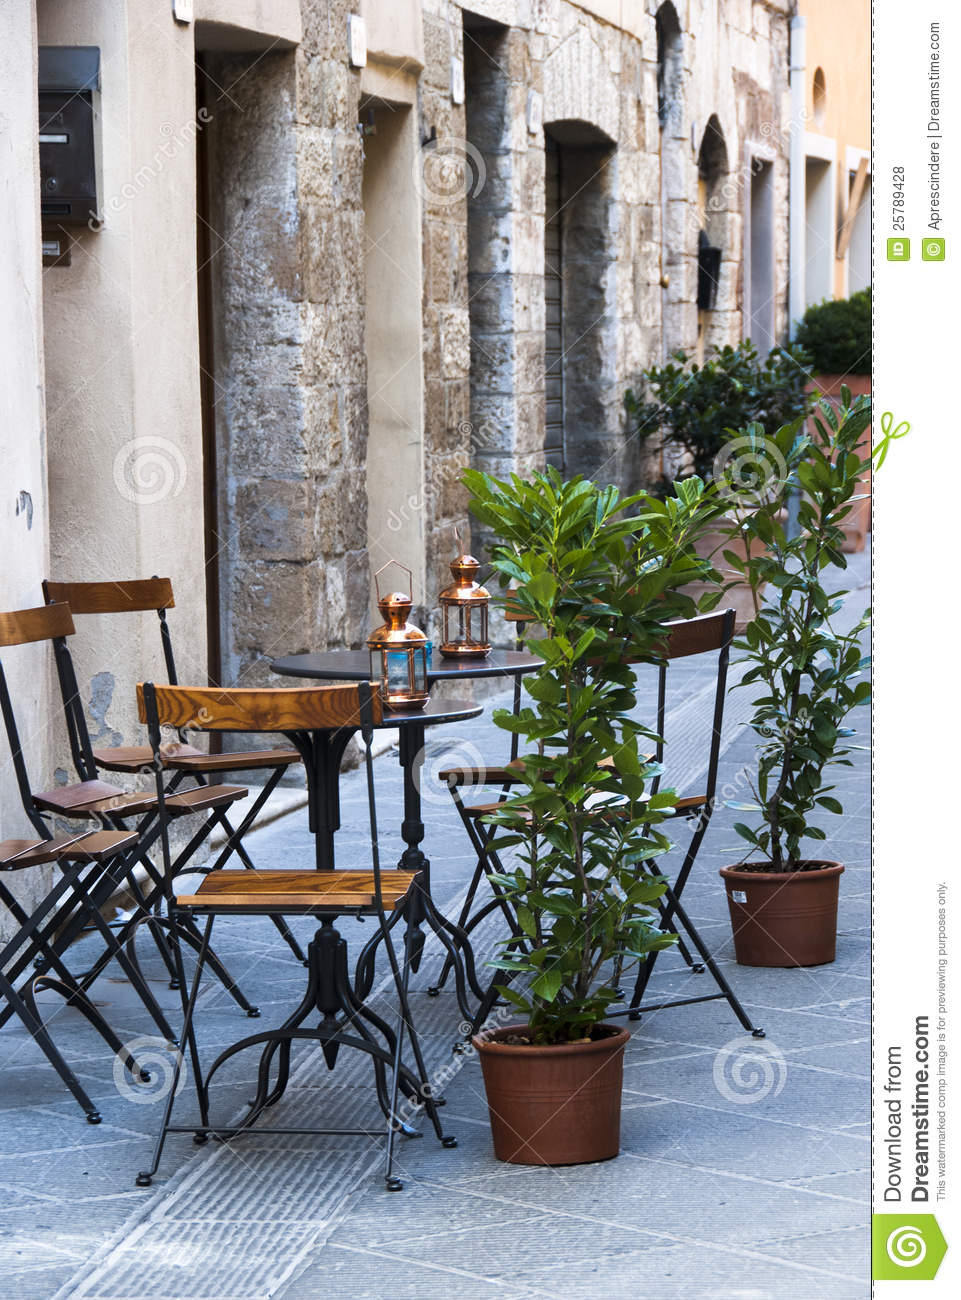 Italian Outdoor Cafe Royalty Free Stock Photos Image